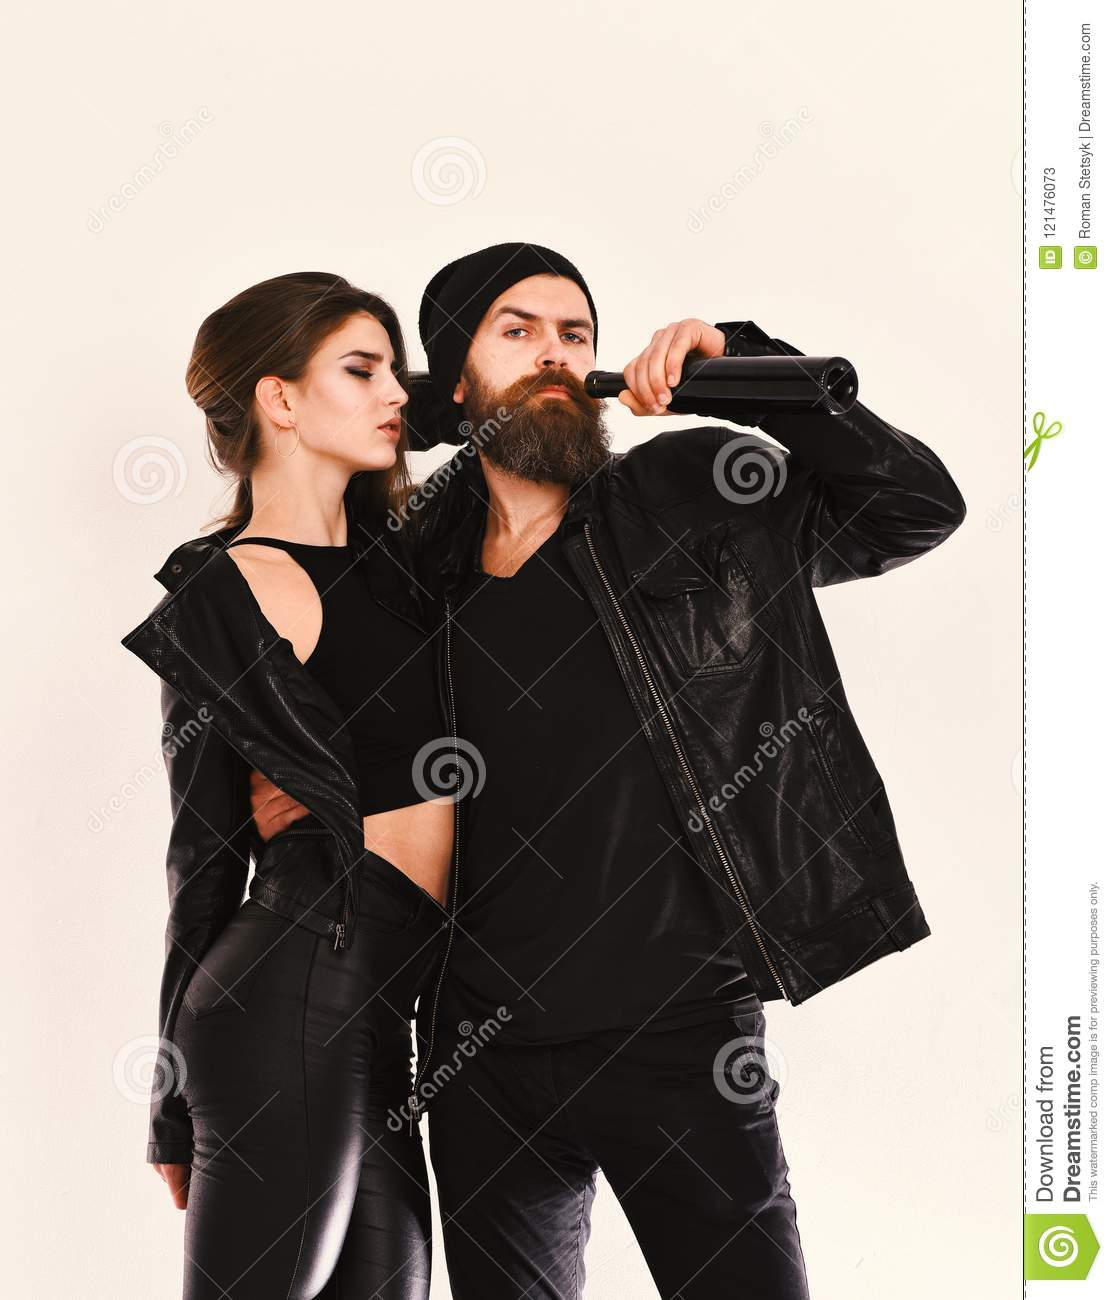 fdfe3d3ef Girl And Bearded Man In Black Leather Jacket And Hat Stock Image ...